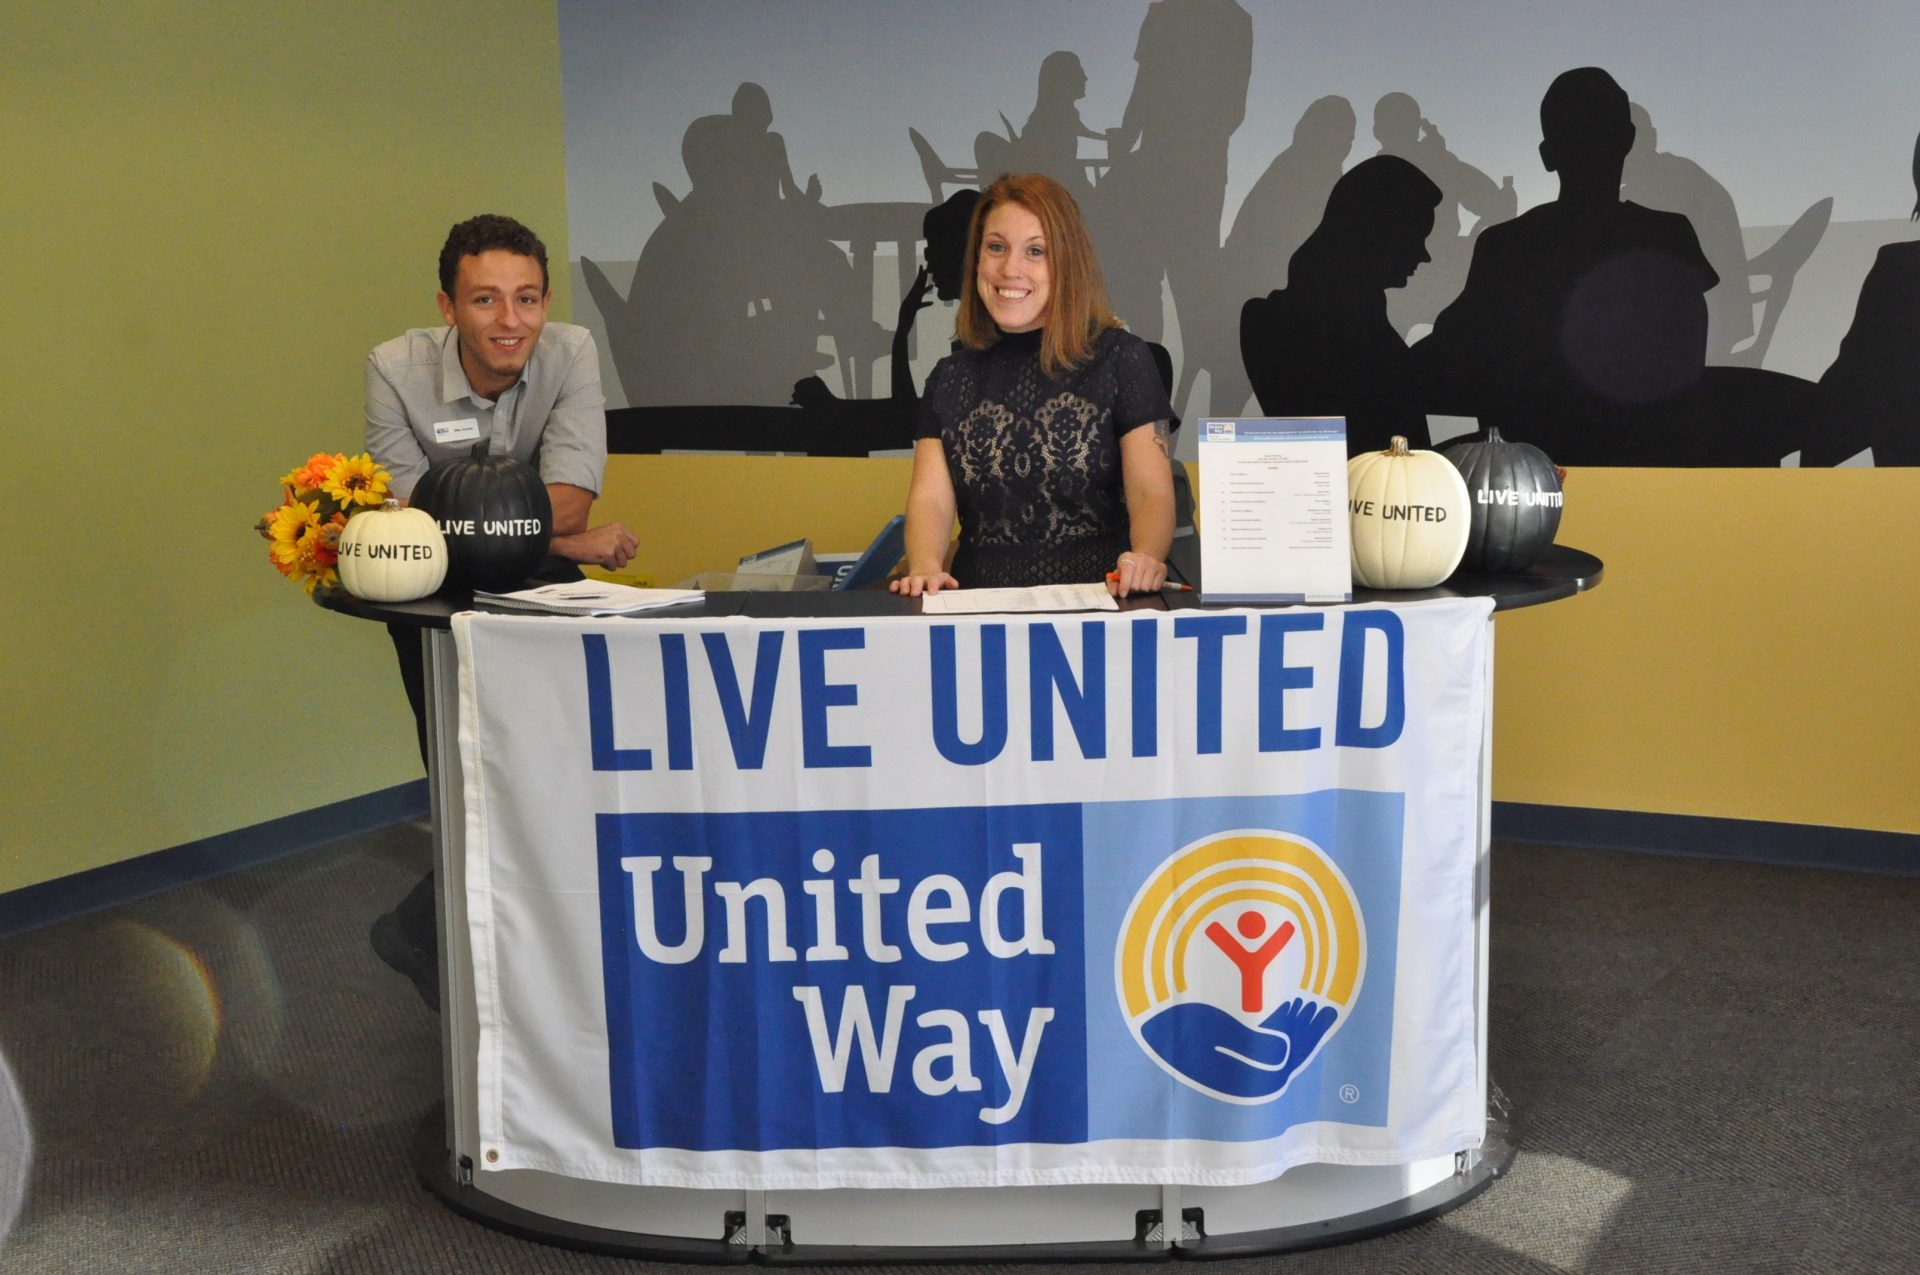 live united banner on table with two people sitting